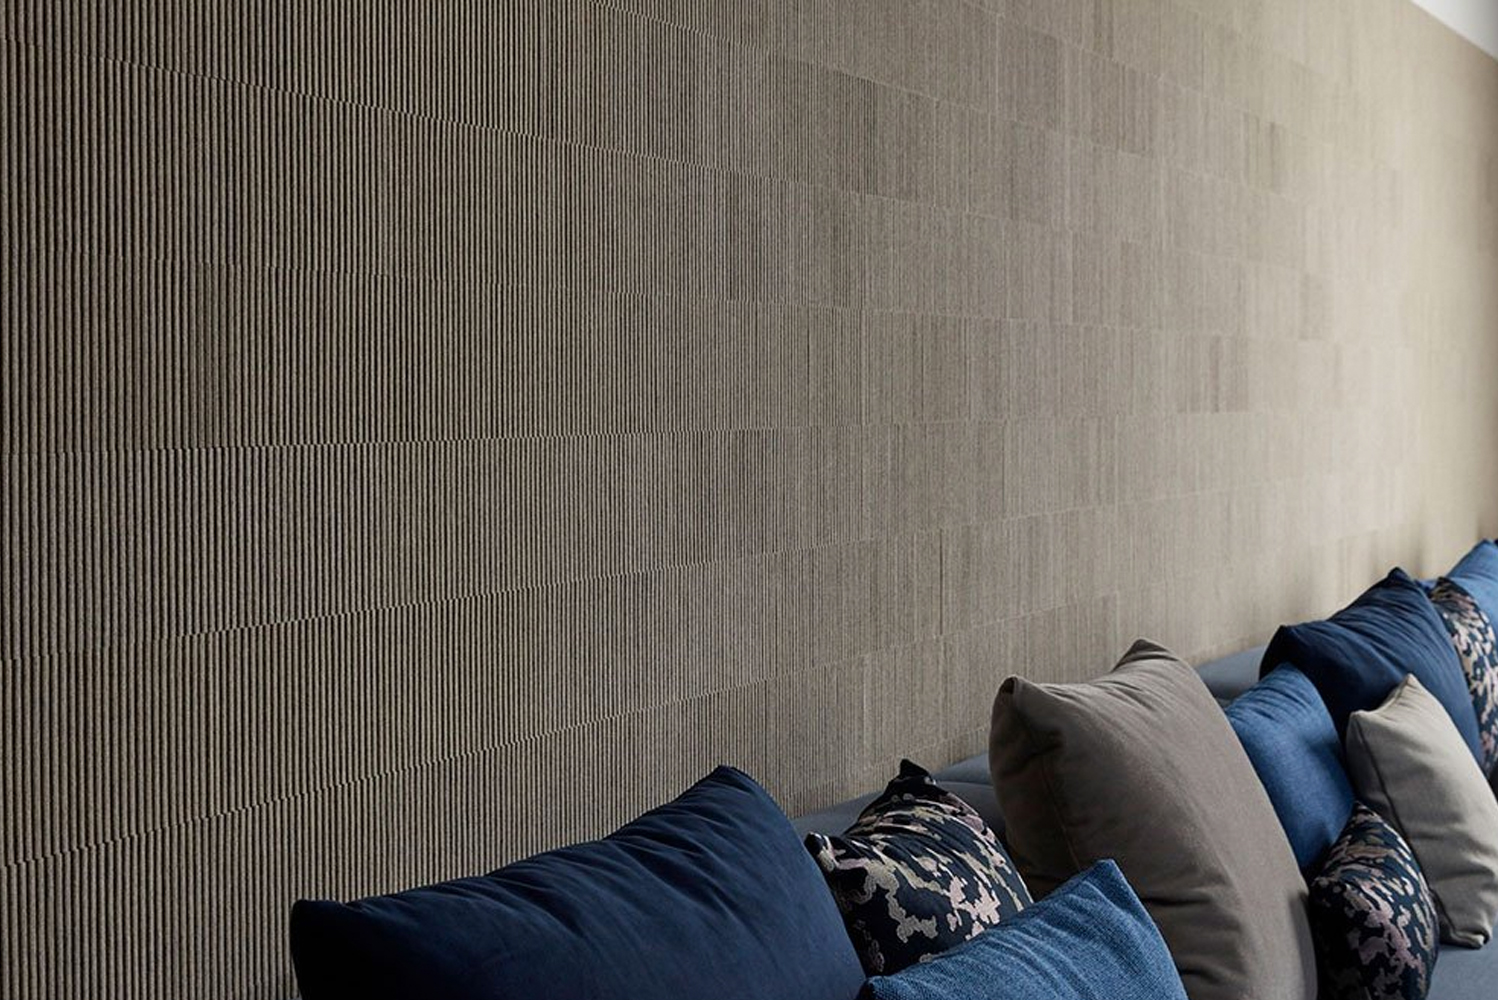 Just like its name, Ribsy wallcovering has a deep ribbed texture created with thick wool felt strips oriented on edge in alternating heights.